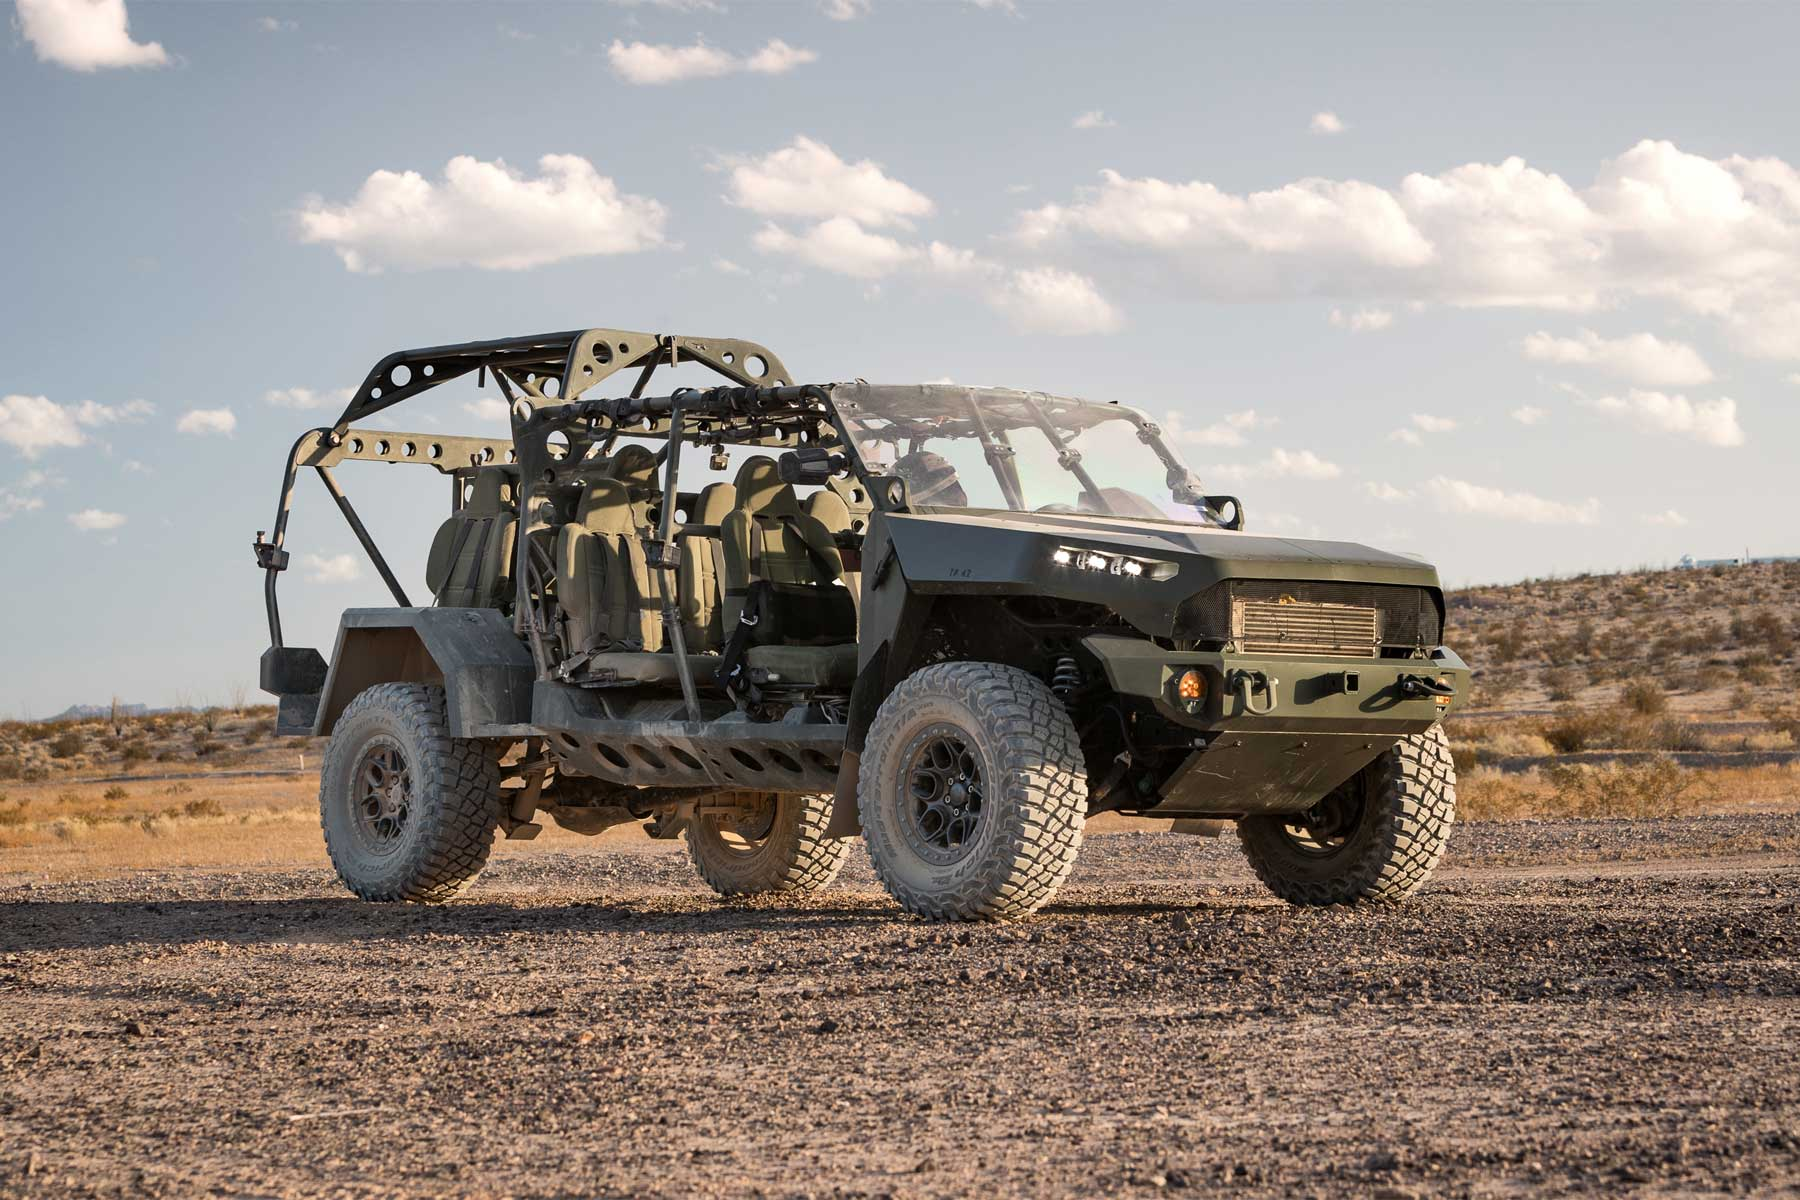 Army Receives First Infantry Squad Vehicles for Carrying Foot Soldiers into the Fight